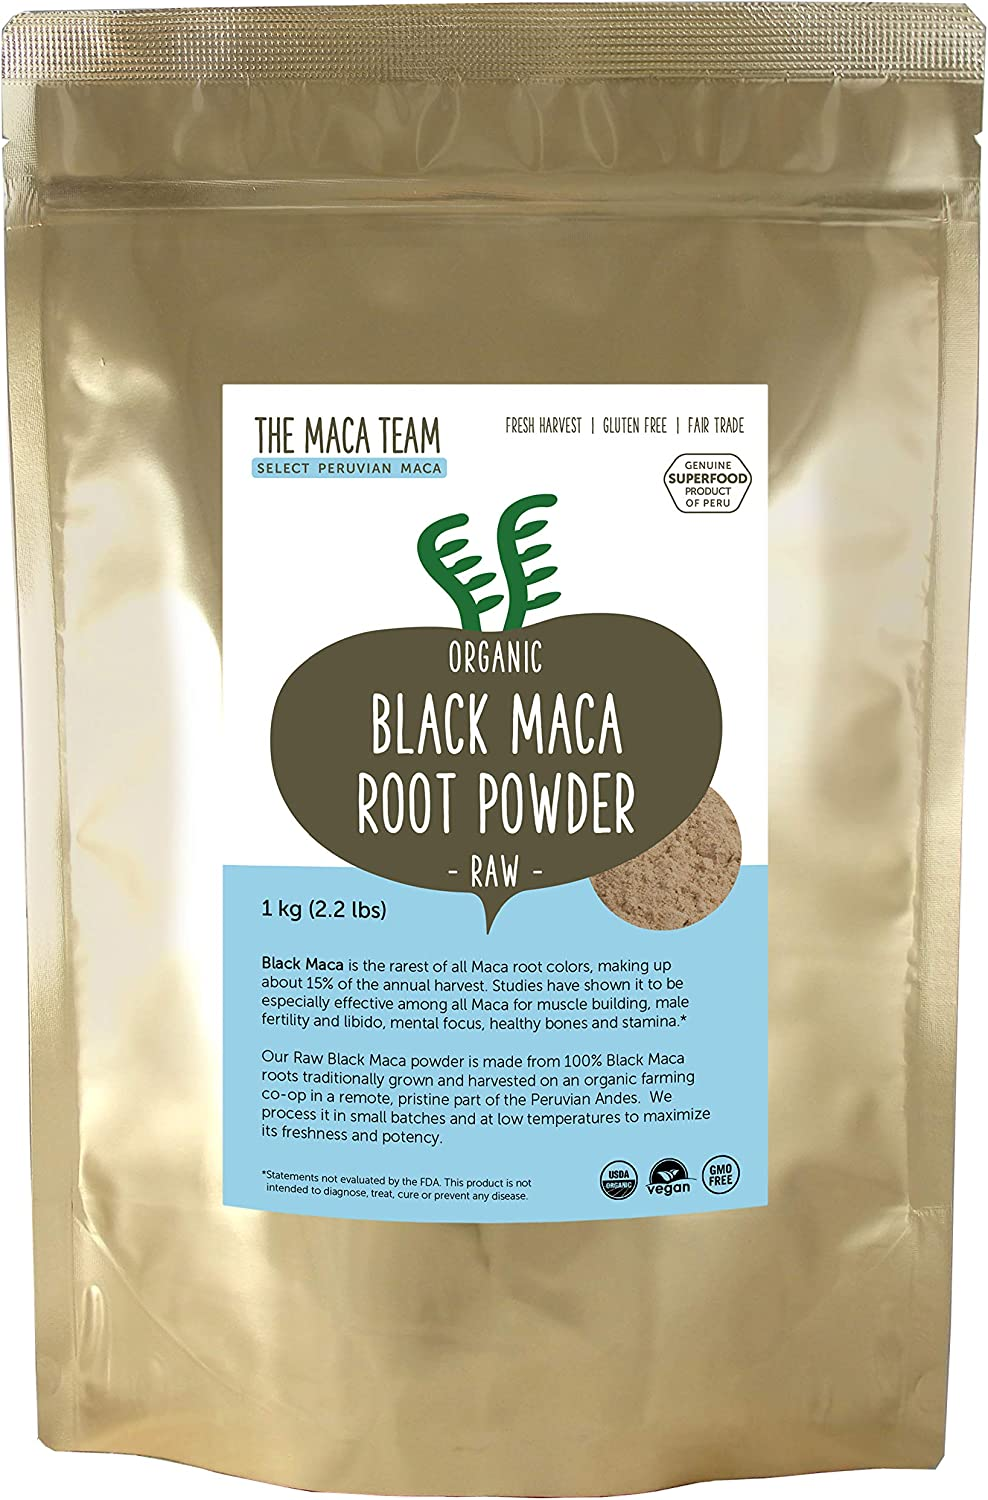 The Maca Team Raw Black Maca Powder, Raw and Vegan Maca Powder Fresh from Peru, 2.2 Pounds, 111 Servings